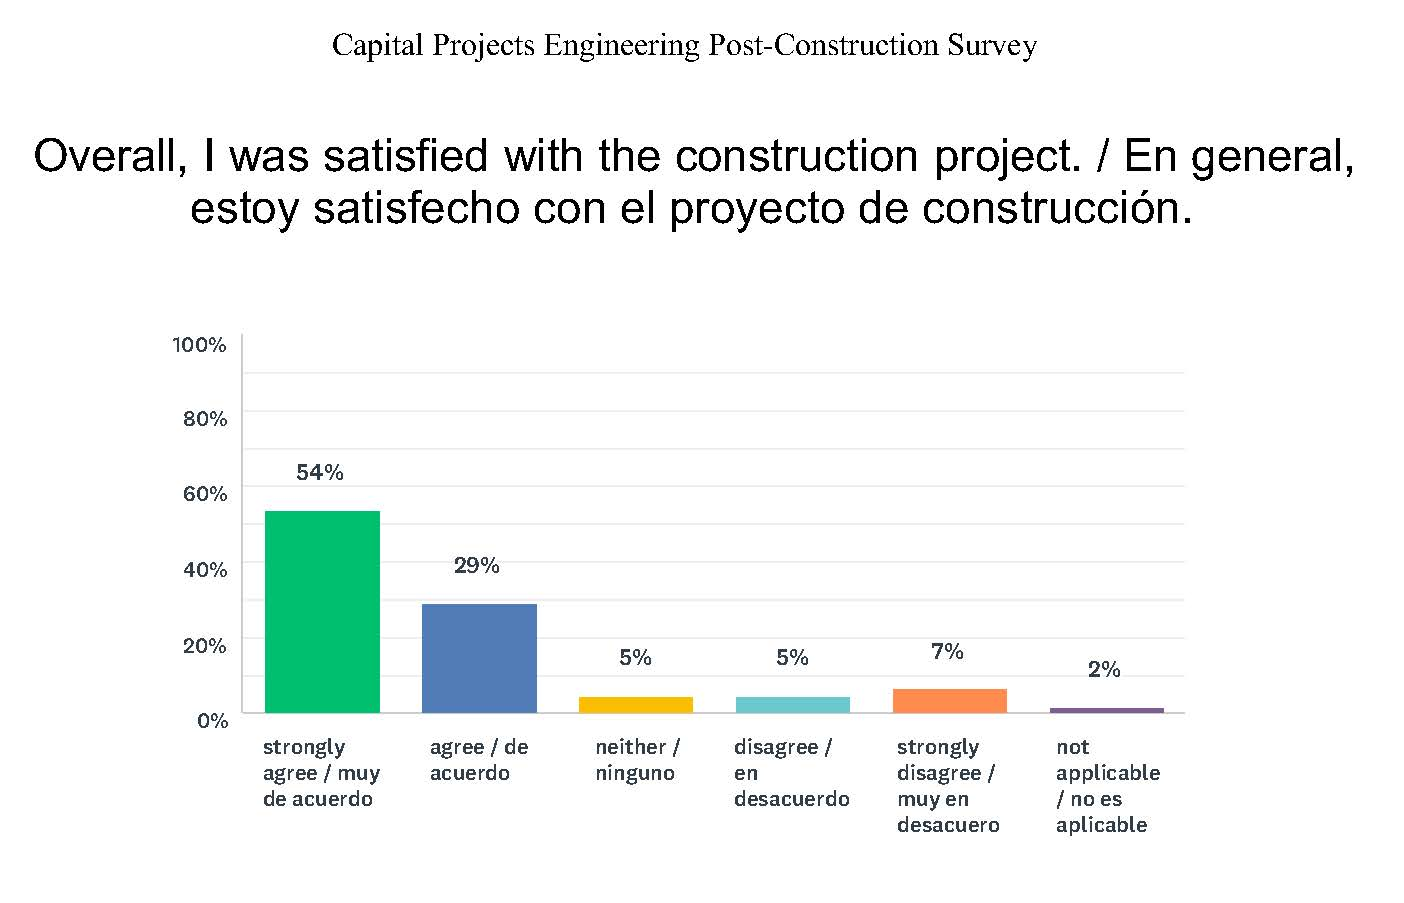 Post-Constuction Survey Results Overall_2017September